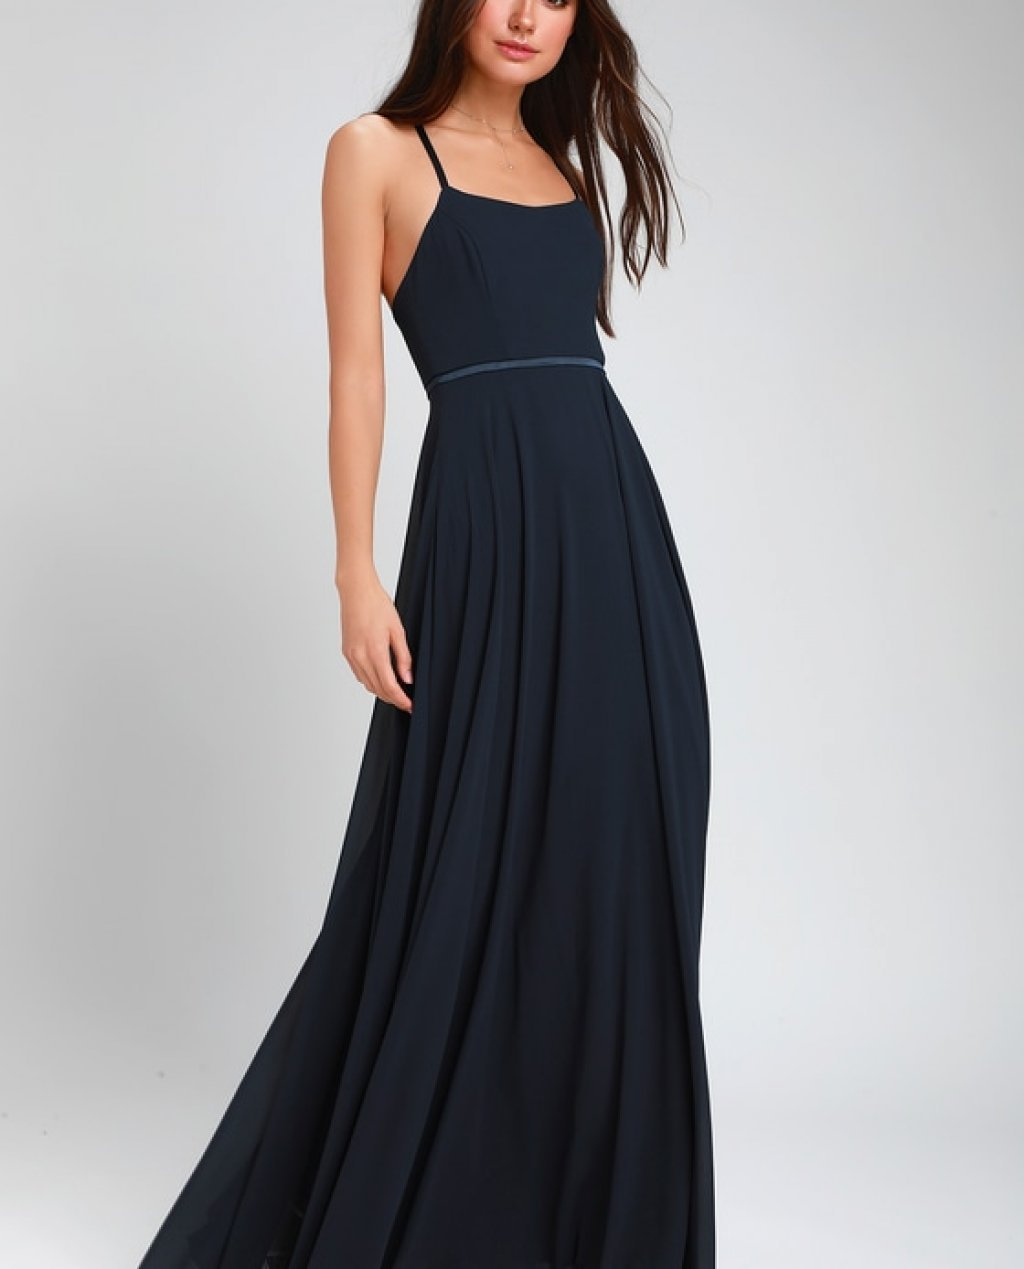 Grand Soiree Navy Blue Sleeveless Maxi Dress